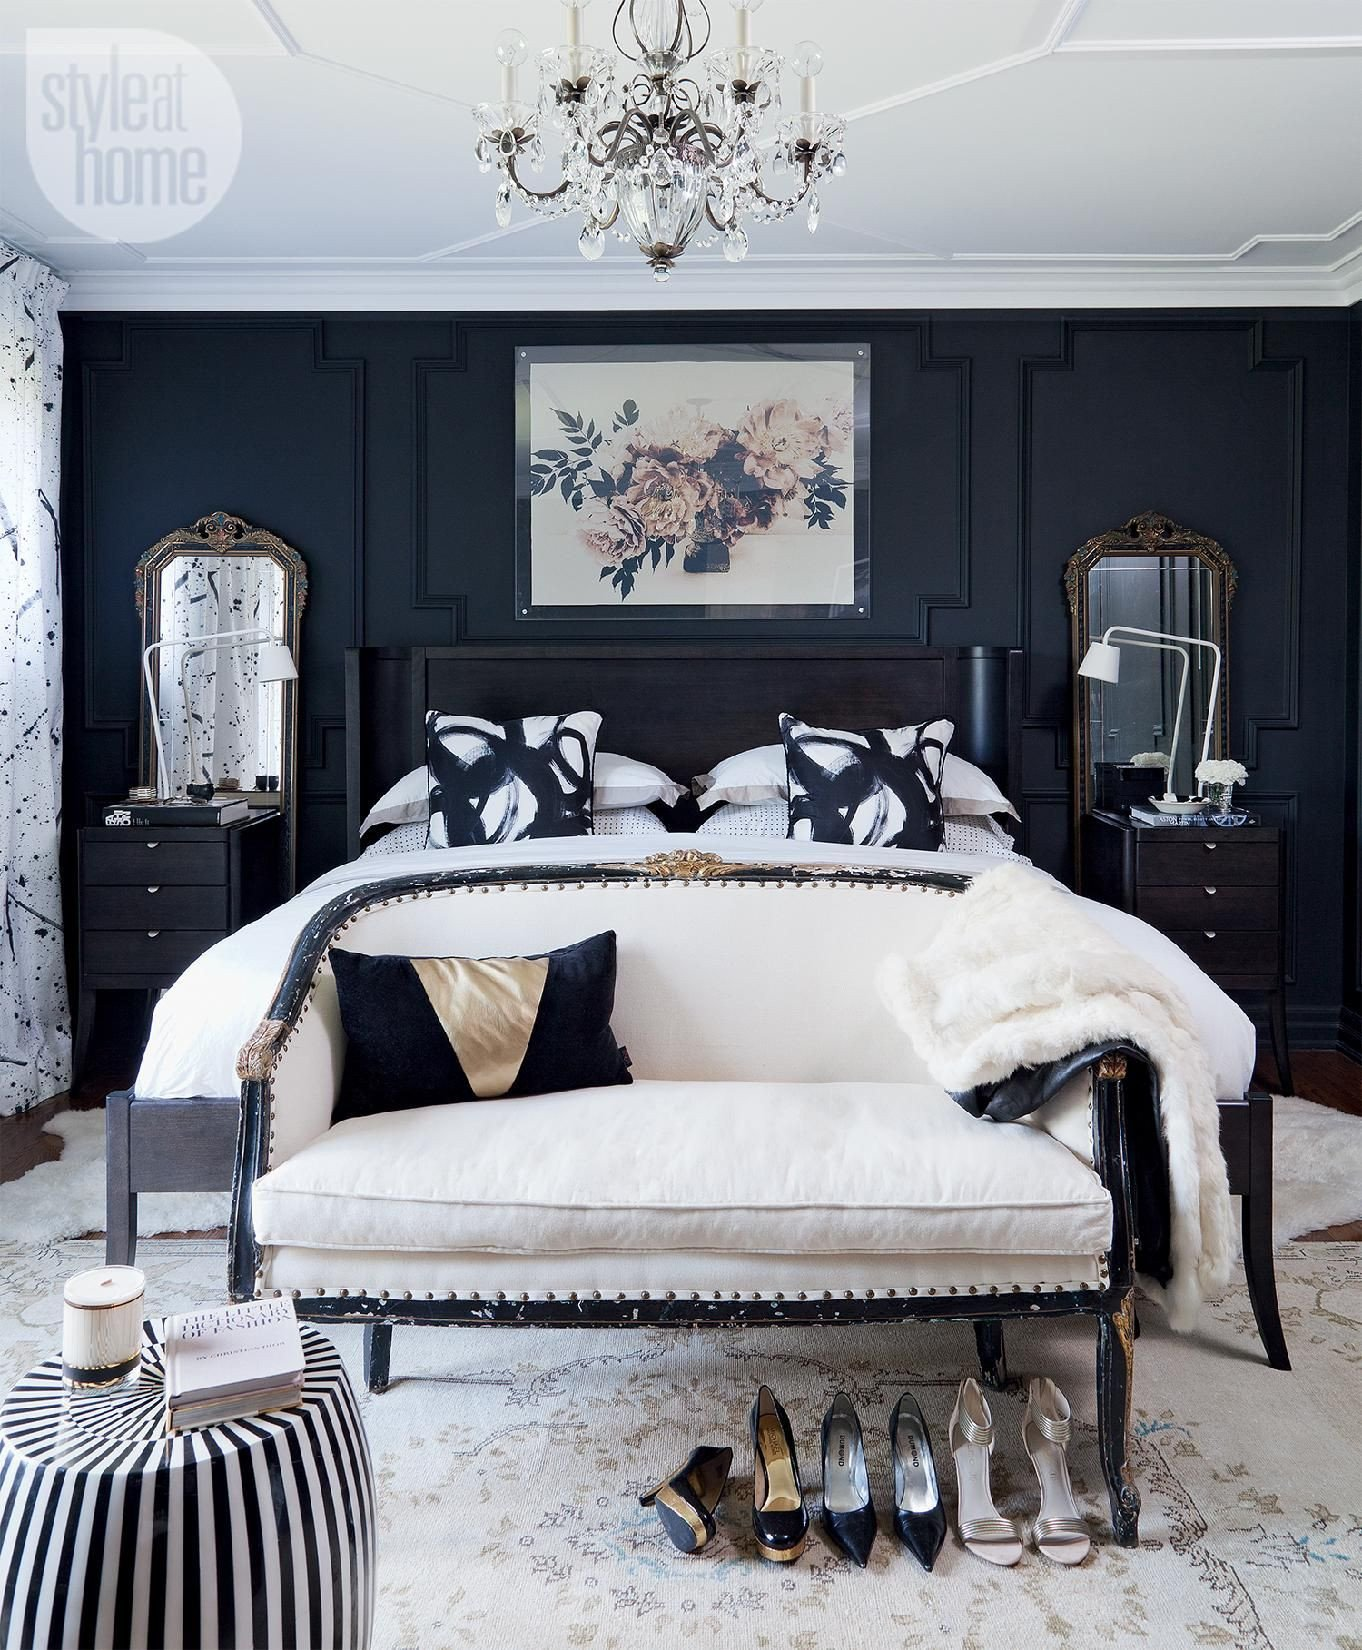 Black White and Gray Bedroom New Style at Home Christine Dovey S Bedroom Shop This Look